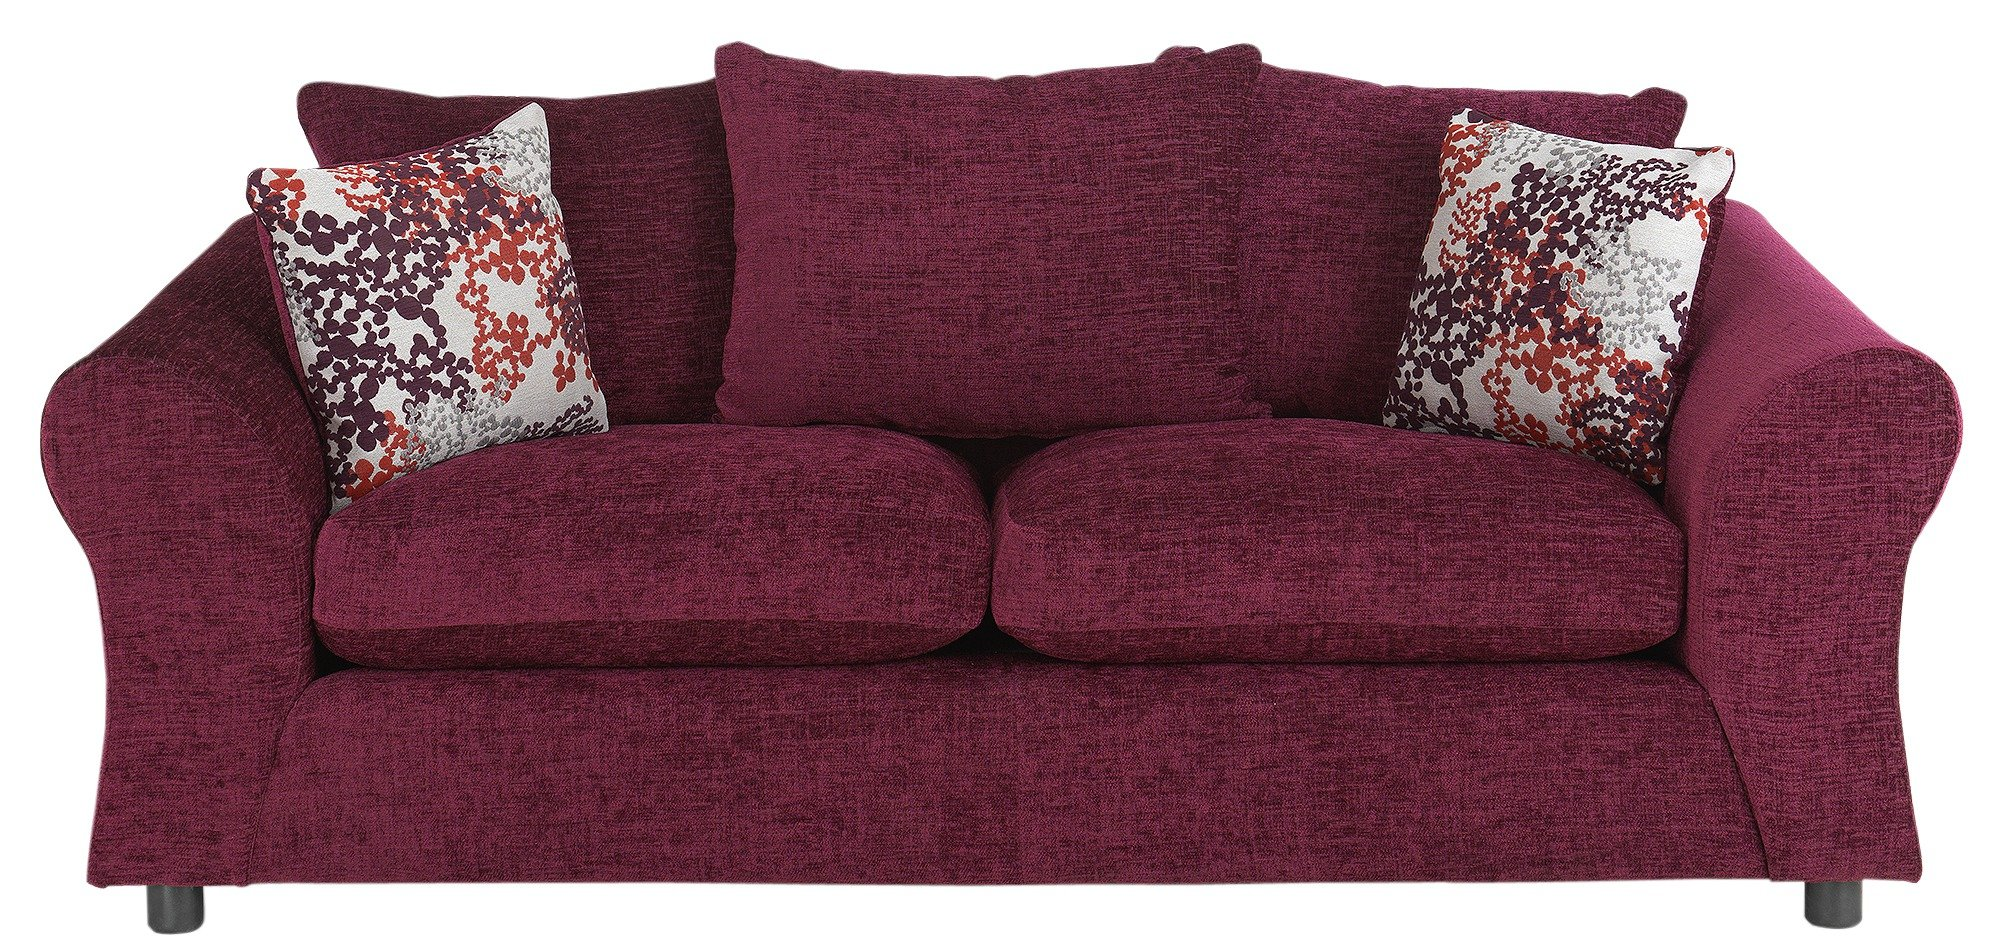 Argos Home New Clara 3 Seater Fabric Sofa   Plum